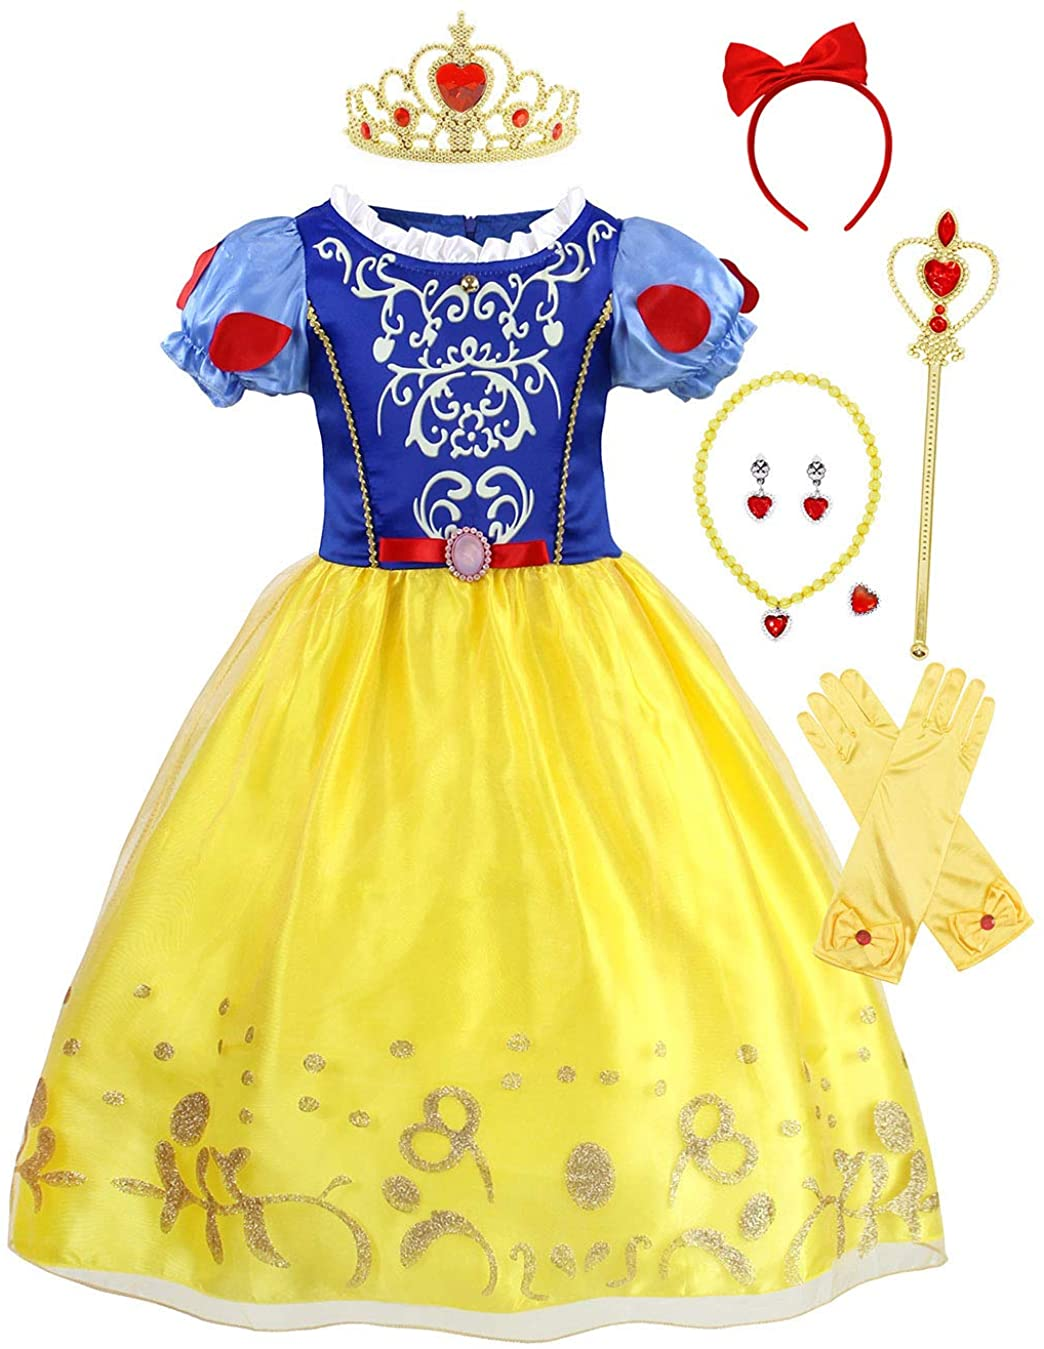 WonderBabe Princess Costume for Little Girls Halloween Dress up Birthday Party Outfits 1-12 Years